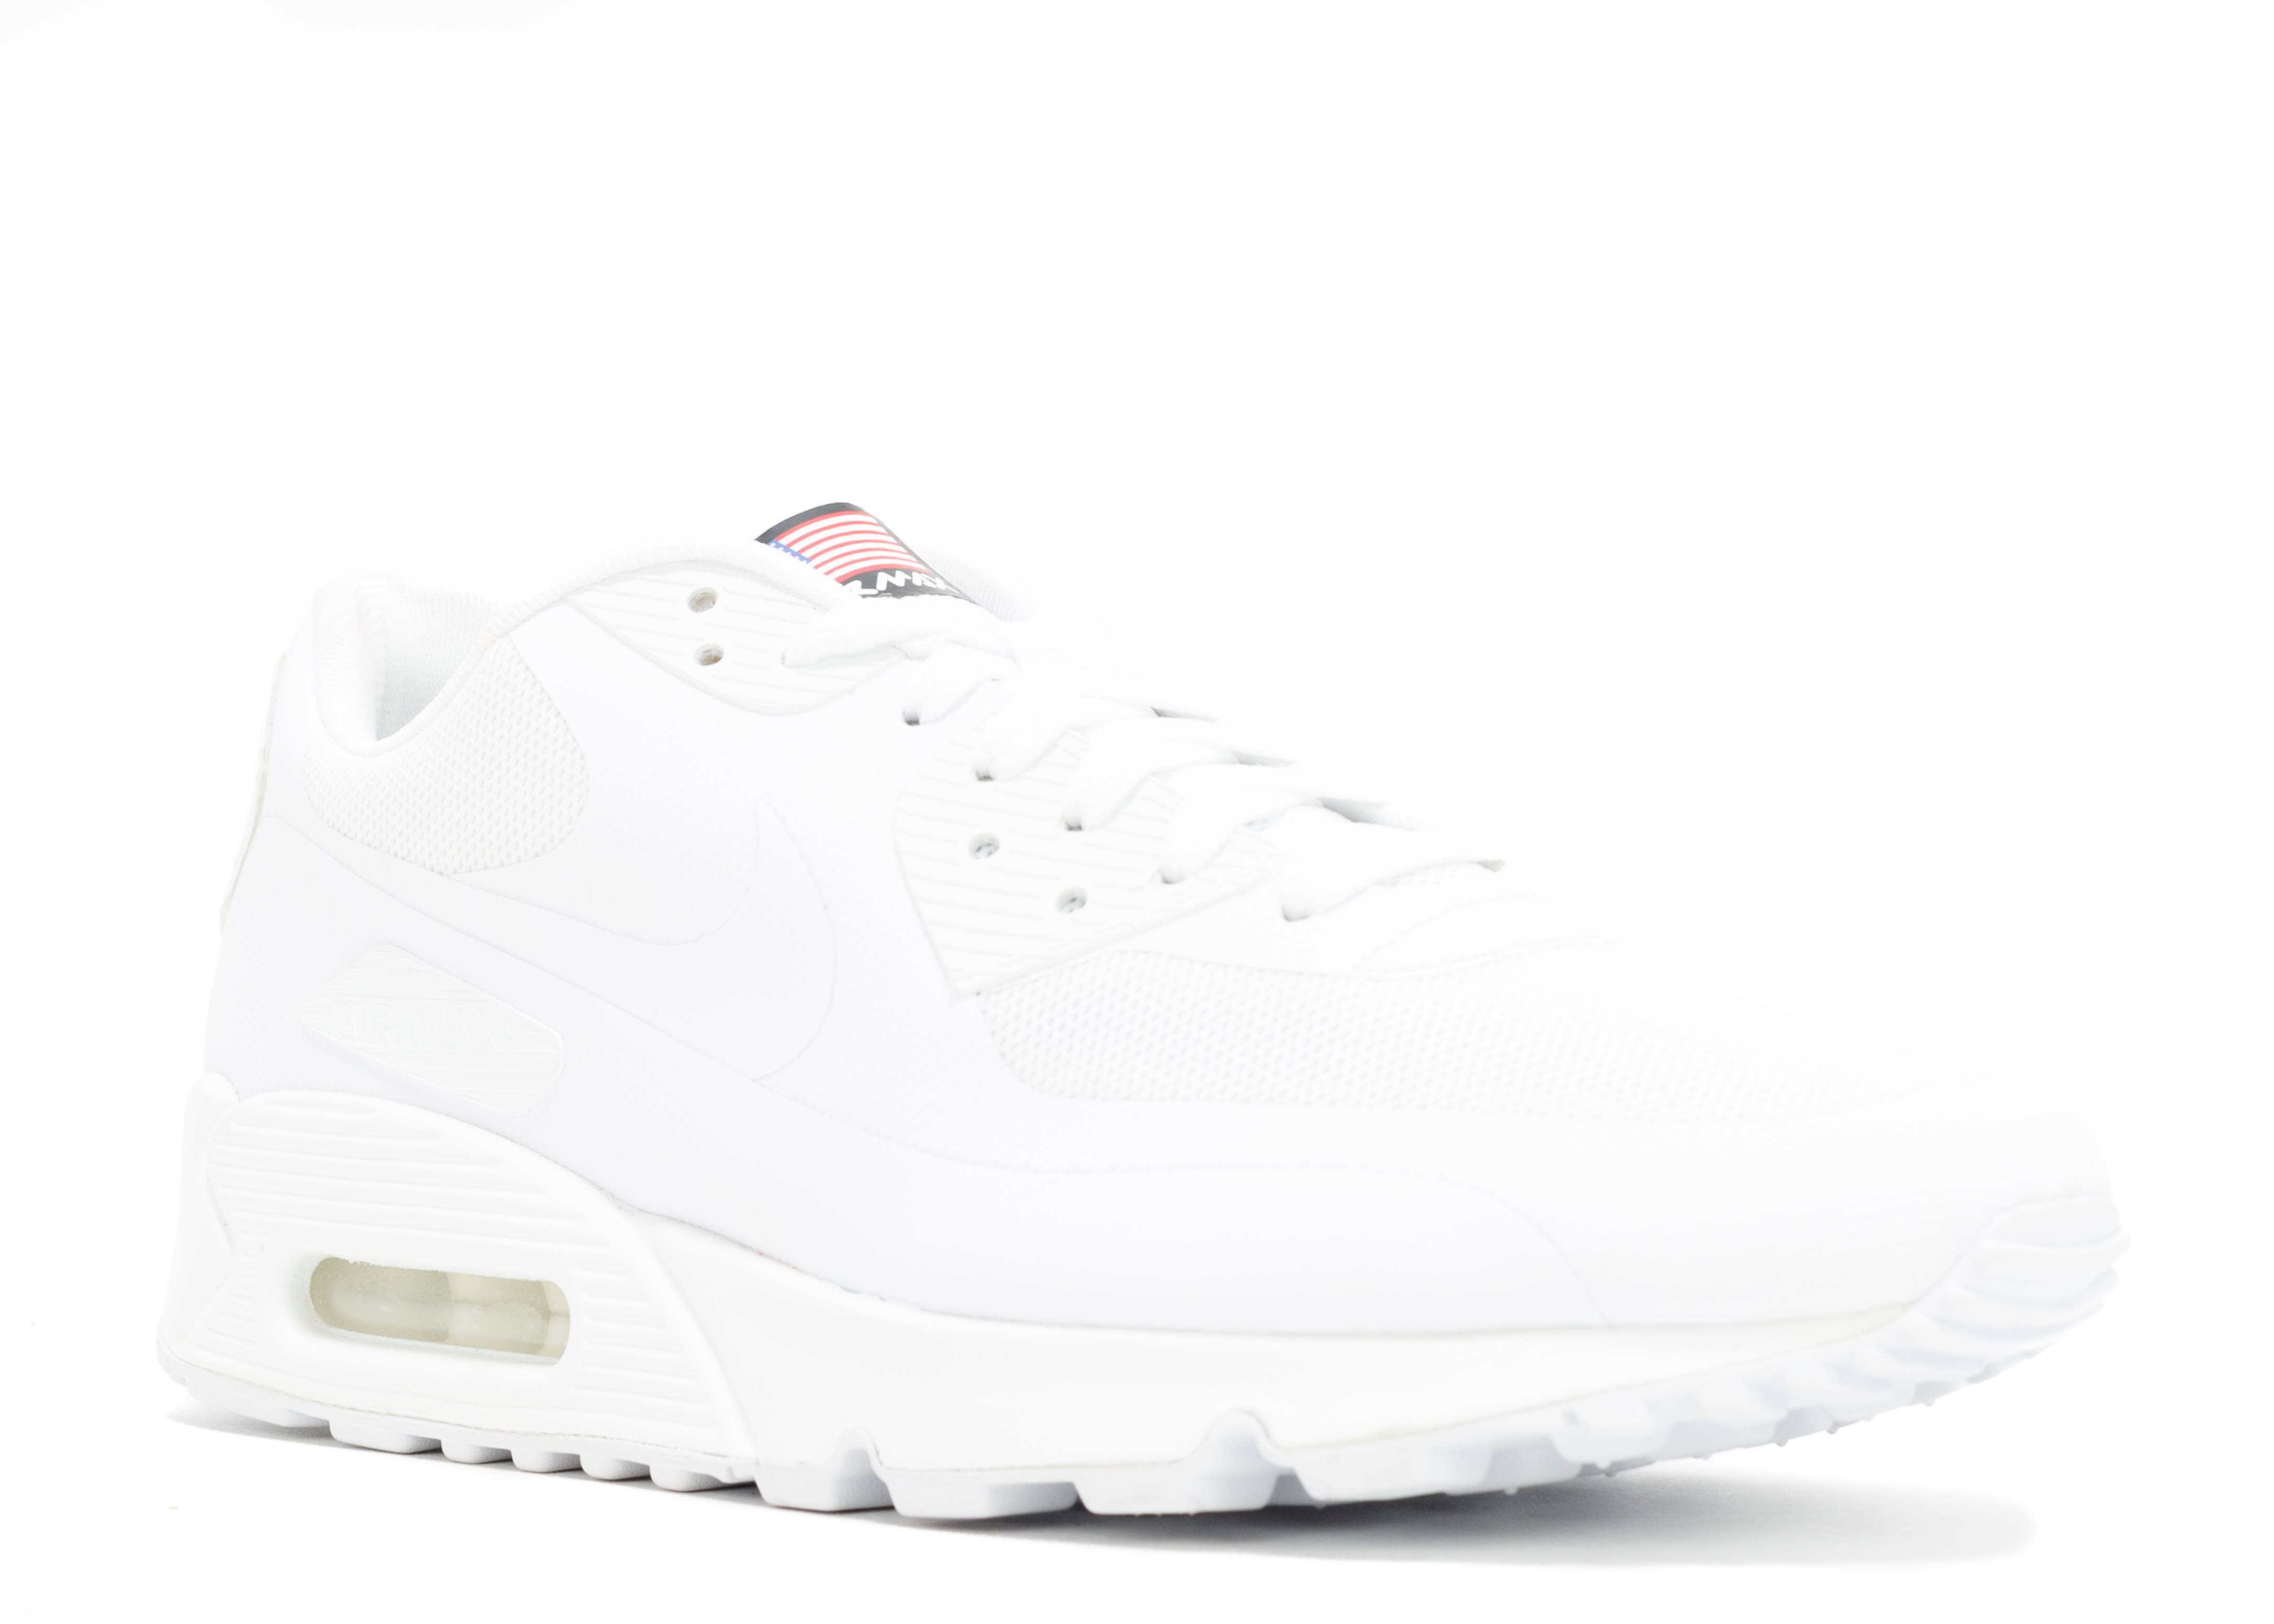 Details about NIKE AIR MAX 90 HYPERFUSE USA WHITE Size UK 4 QS 613841 110 Independence Day